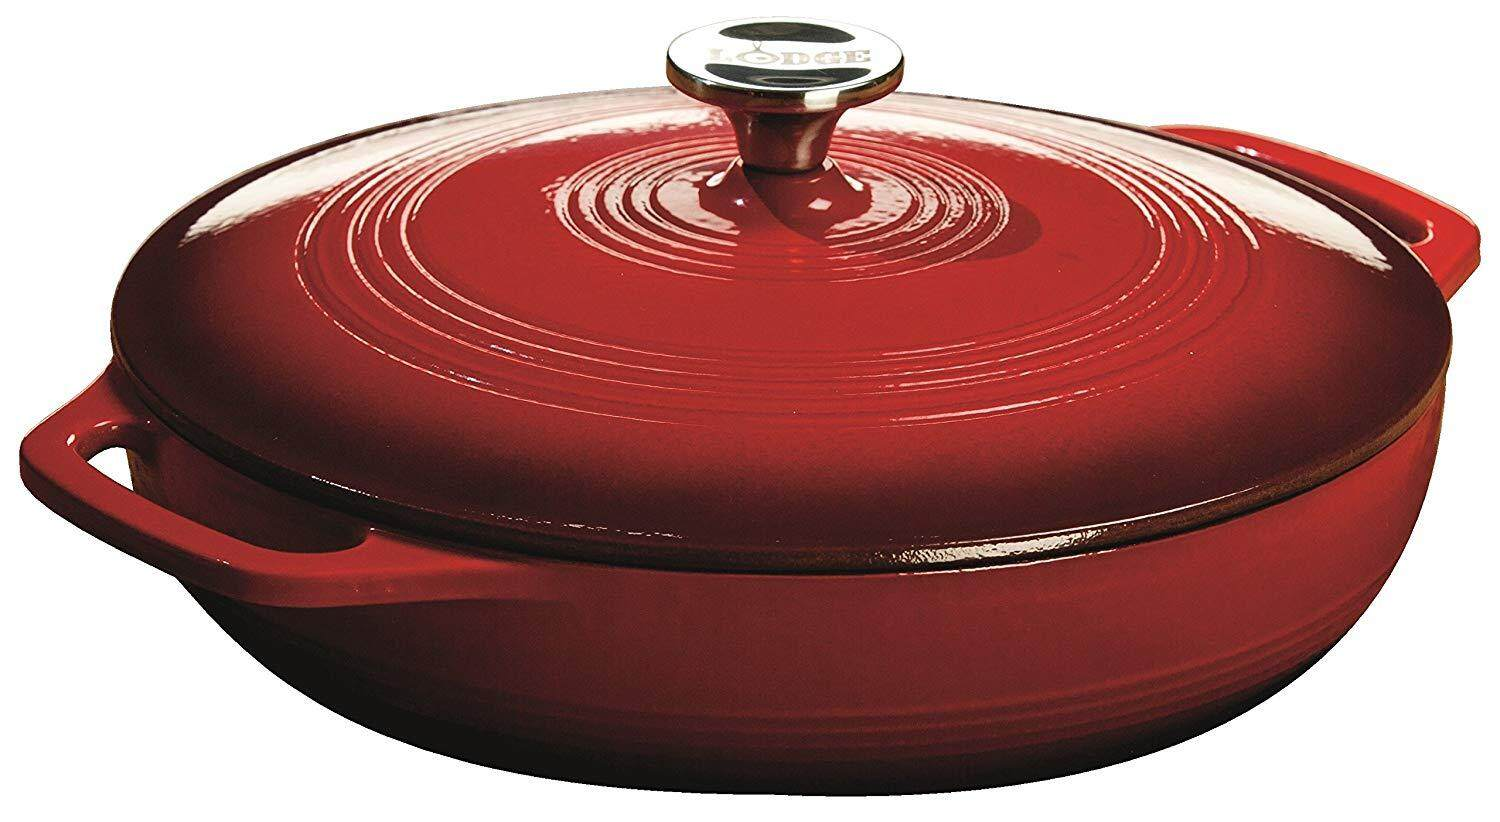 Lodge 3.6 Quart Cast Iron Casserole Pan. EC3CC43 Red Enamel Cast Iron Casserole Dish with Dual Handles and Lid (Island Spice Red)